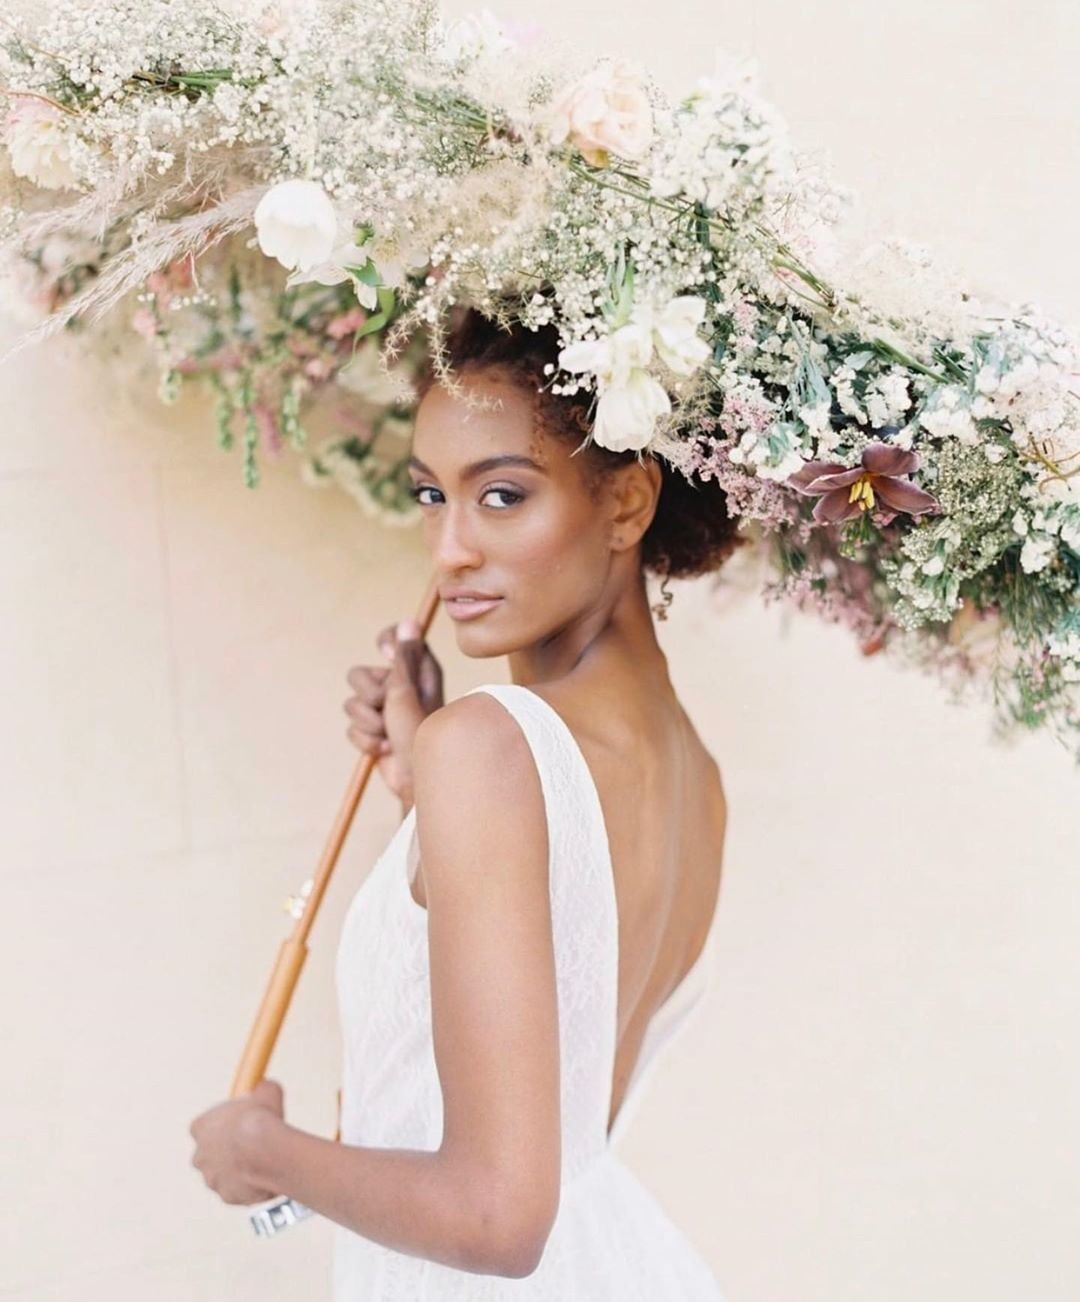 a MAJOR garden party mood | completely obsessed with this floral creation from The Film Theory Workshop 💘✨